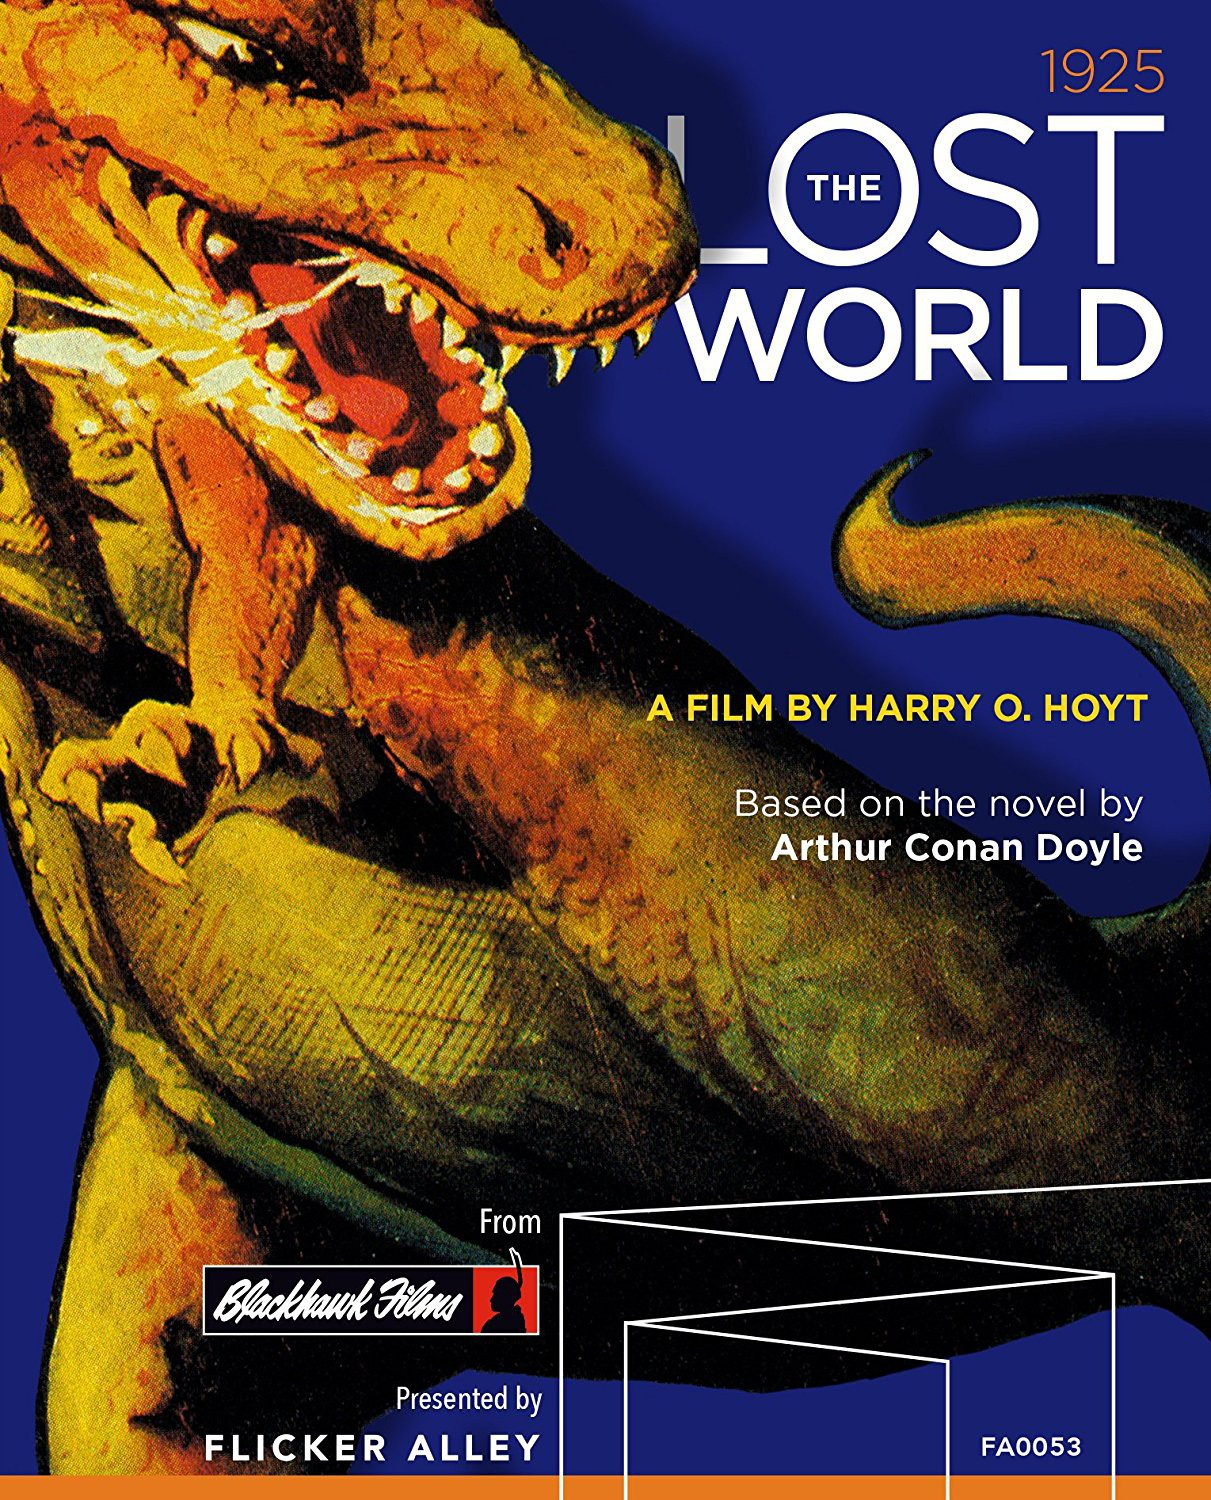 the lost world essay Today, the search for the lost world continues the views expressed in these essays are those of the author and do not necessarily represent the views of the library of congress.